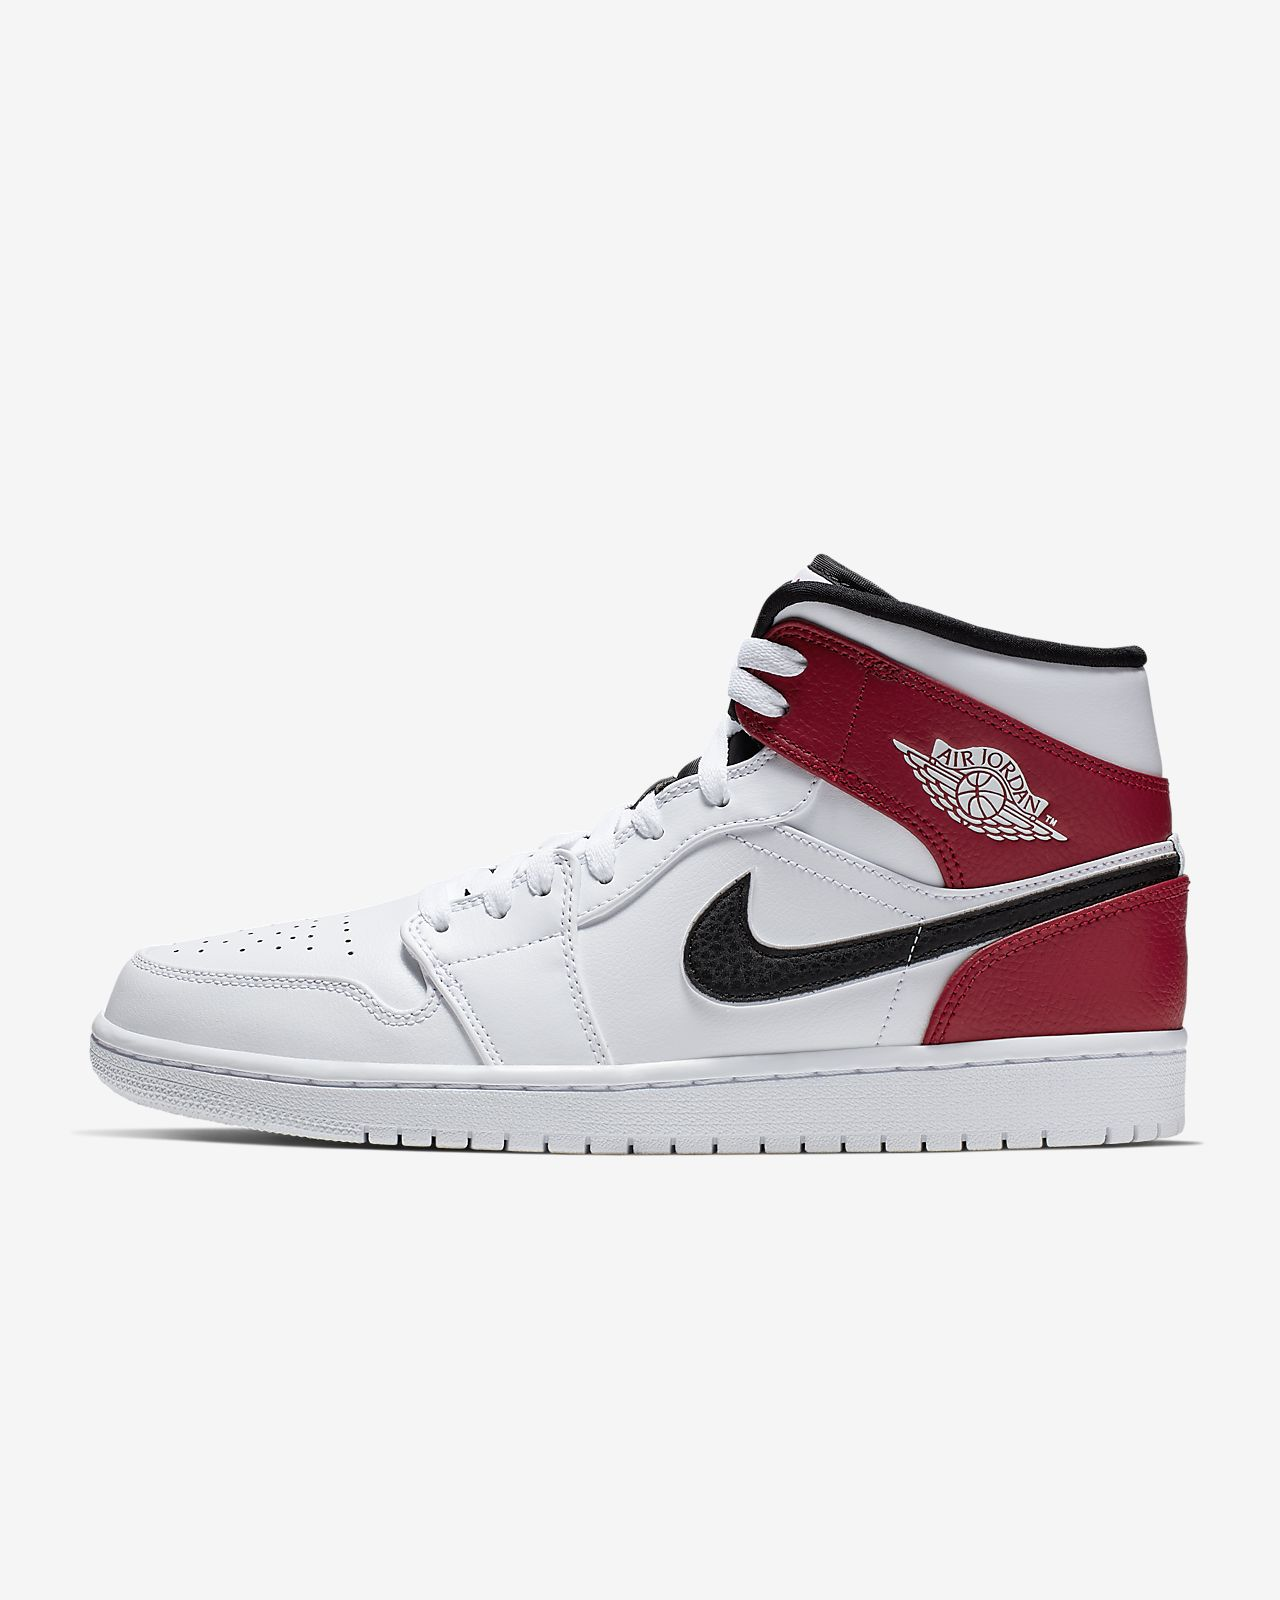 Air Jordan 1 Mid Herrenschuh